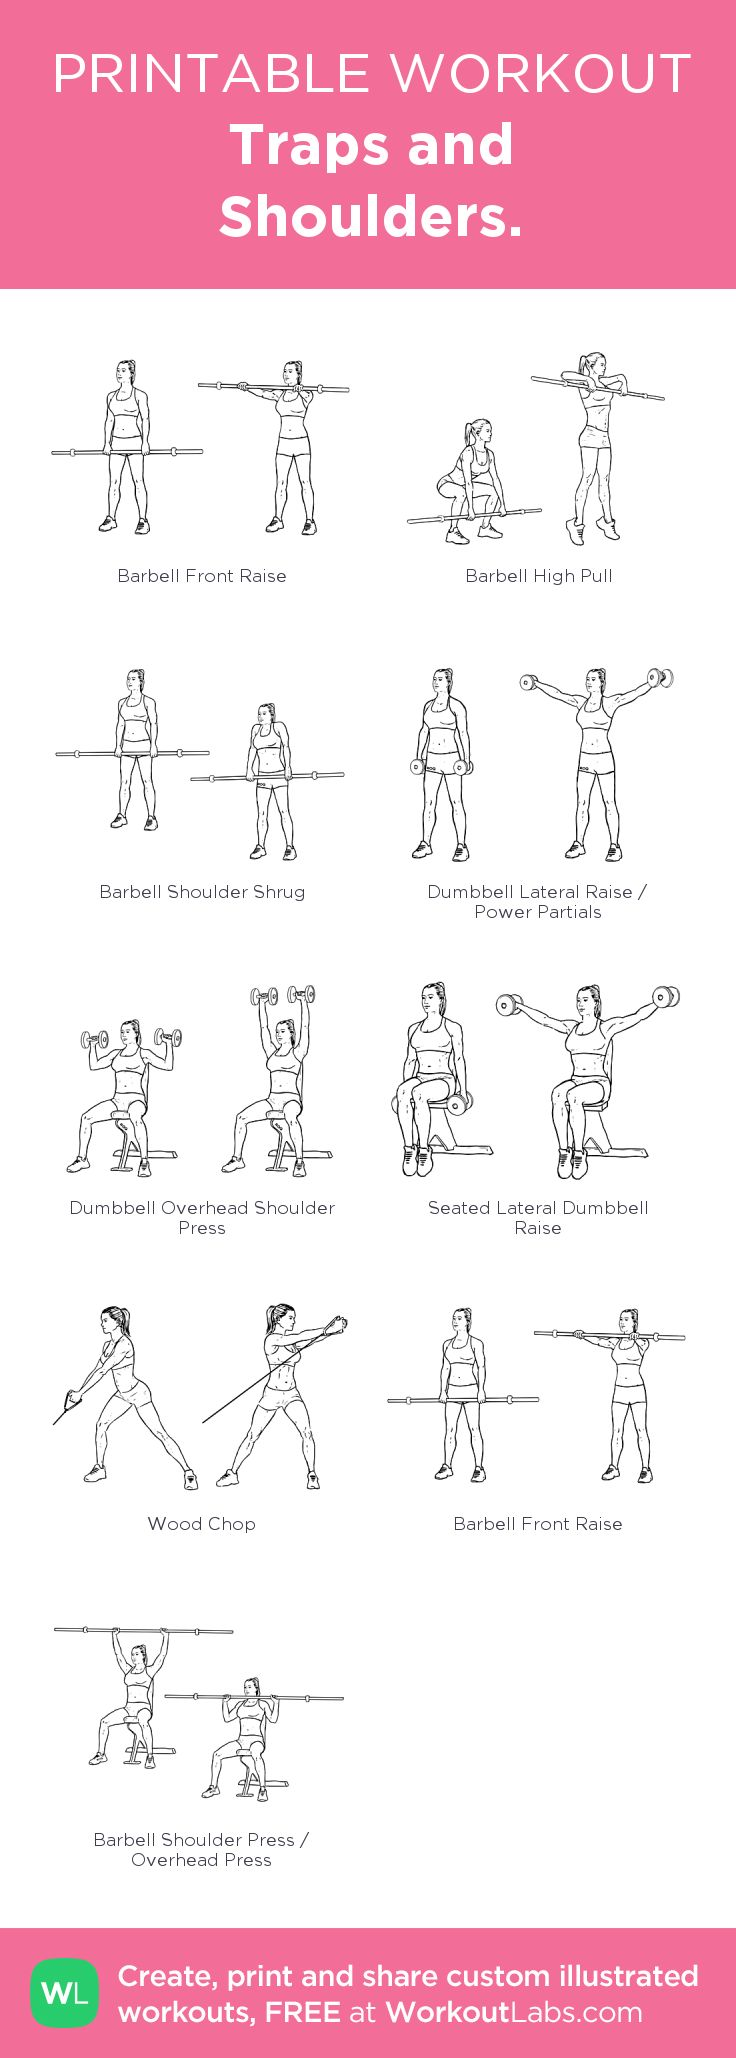 Traps and Shoulders.:my visual workout created at WorkoutLabs.com • Click through to customize and download as a FREE PDF! #customworkout